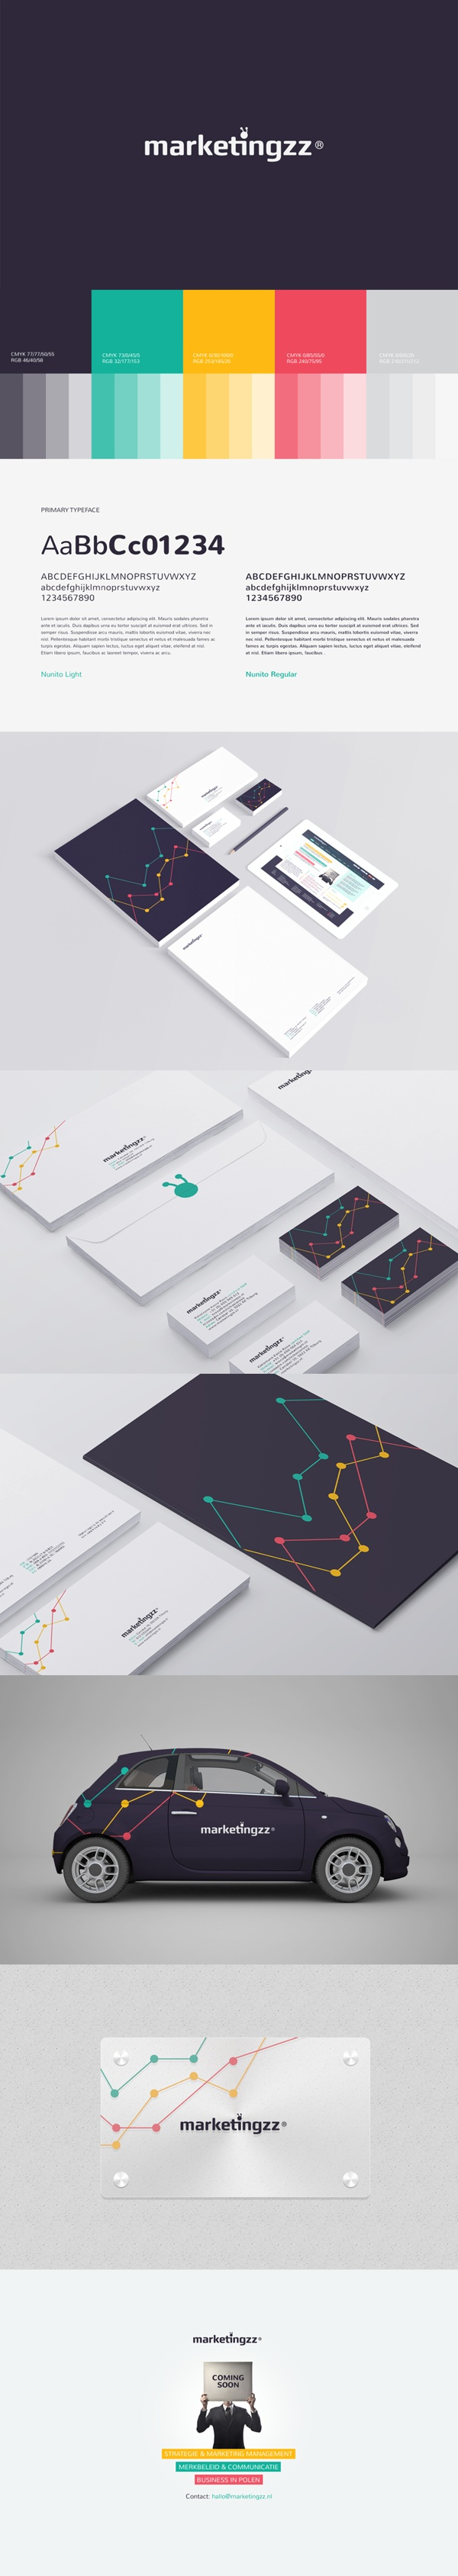 Marketingzz by Motyf , via Behance | #stationary #corporate #design #corporatedesign #identity #branding #marketing < repinned by www.BlickeDeeler.de | Take a look at www.LogoGestaltung-Hamburg.de